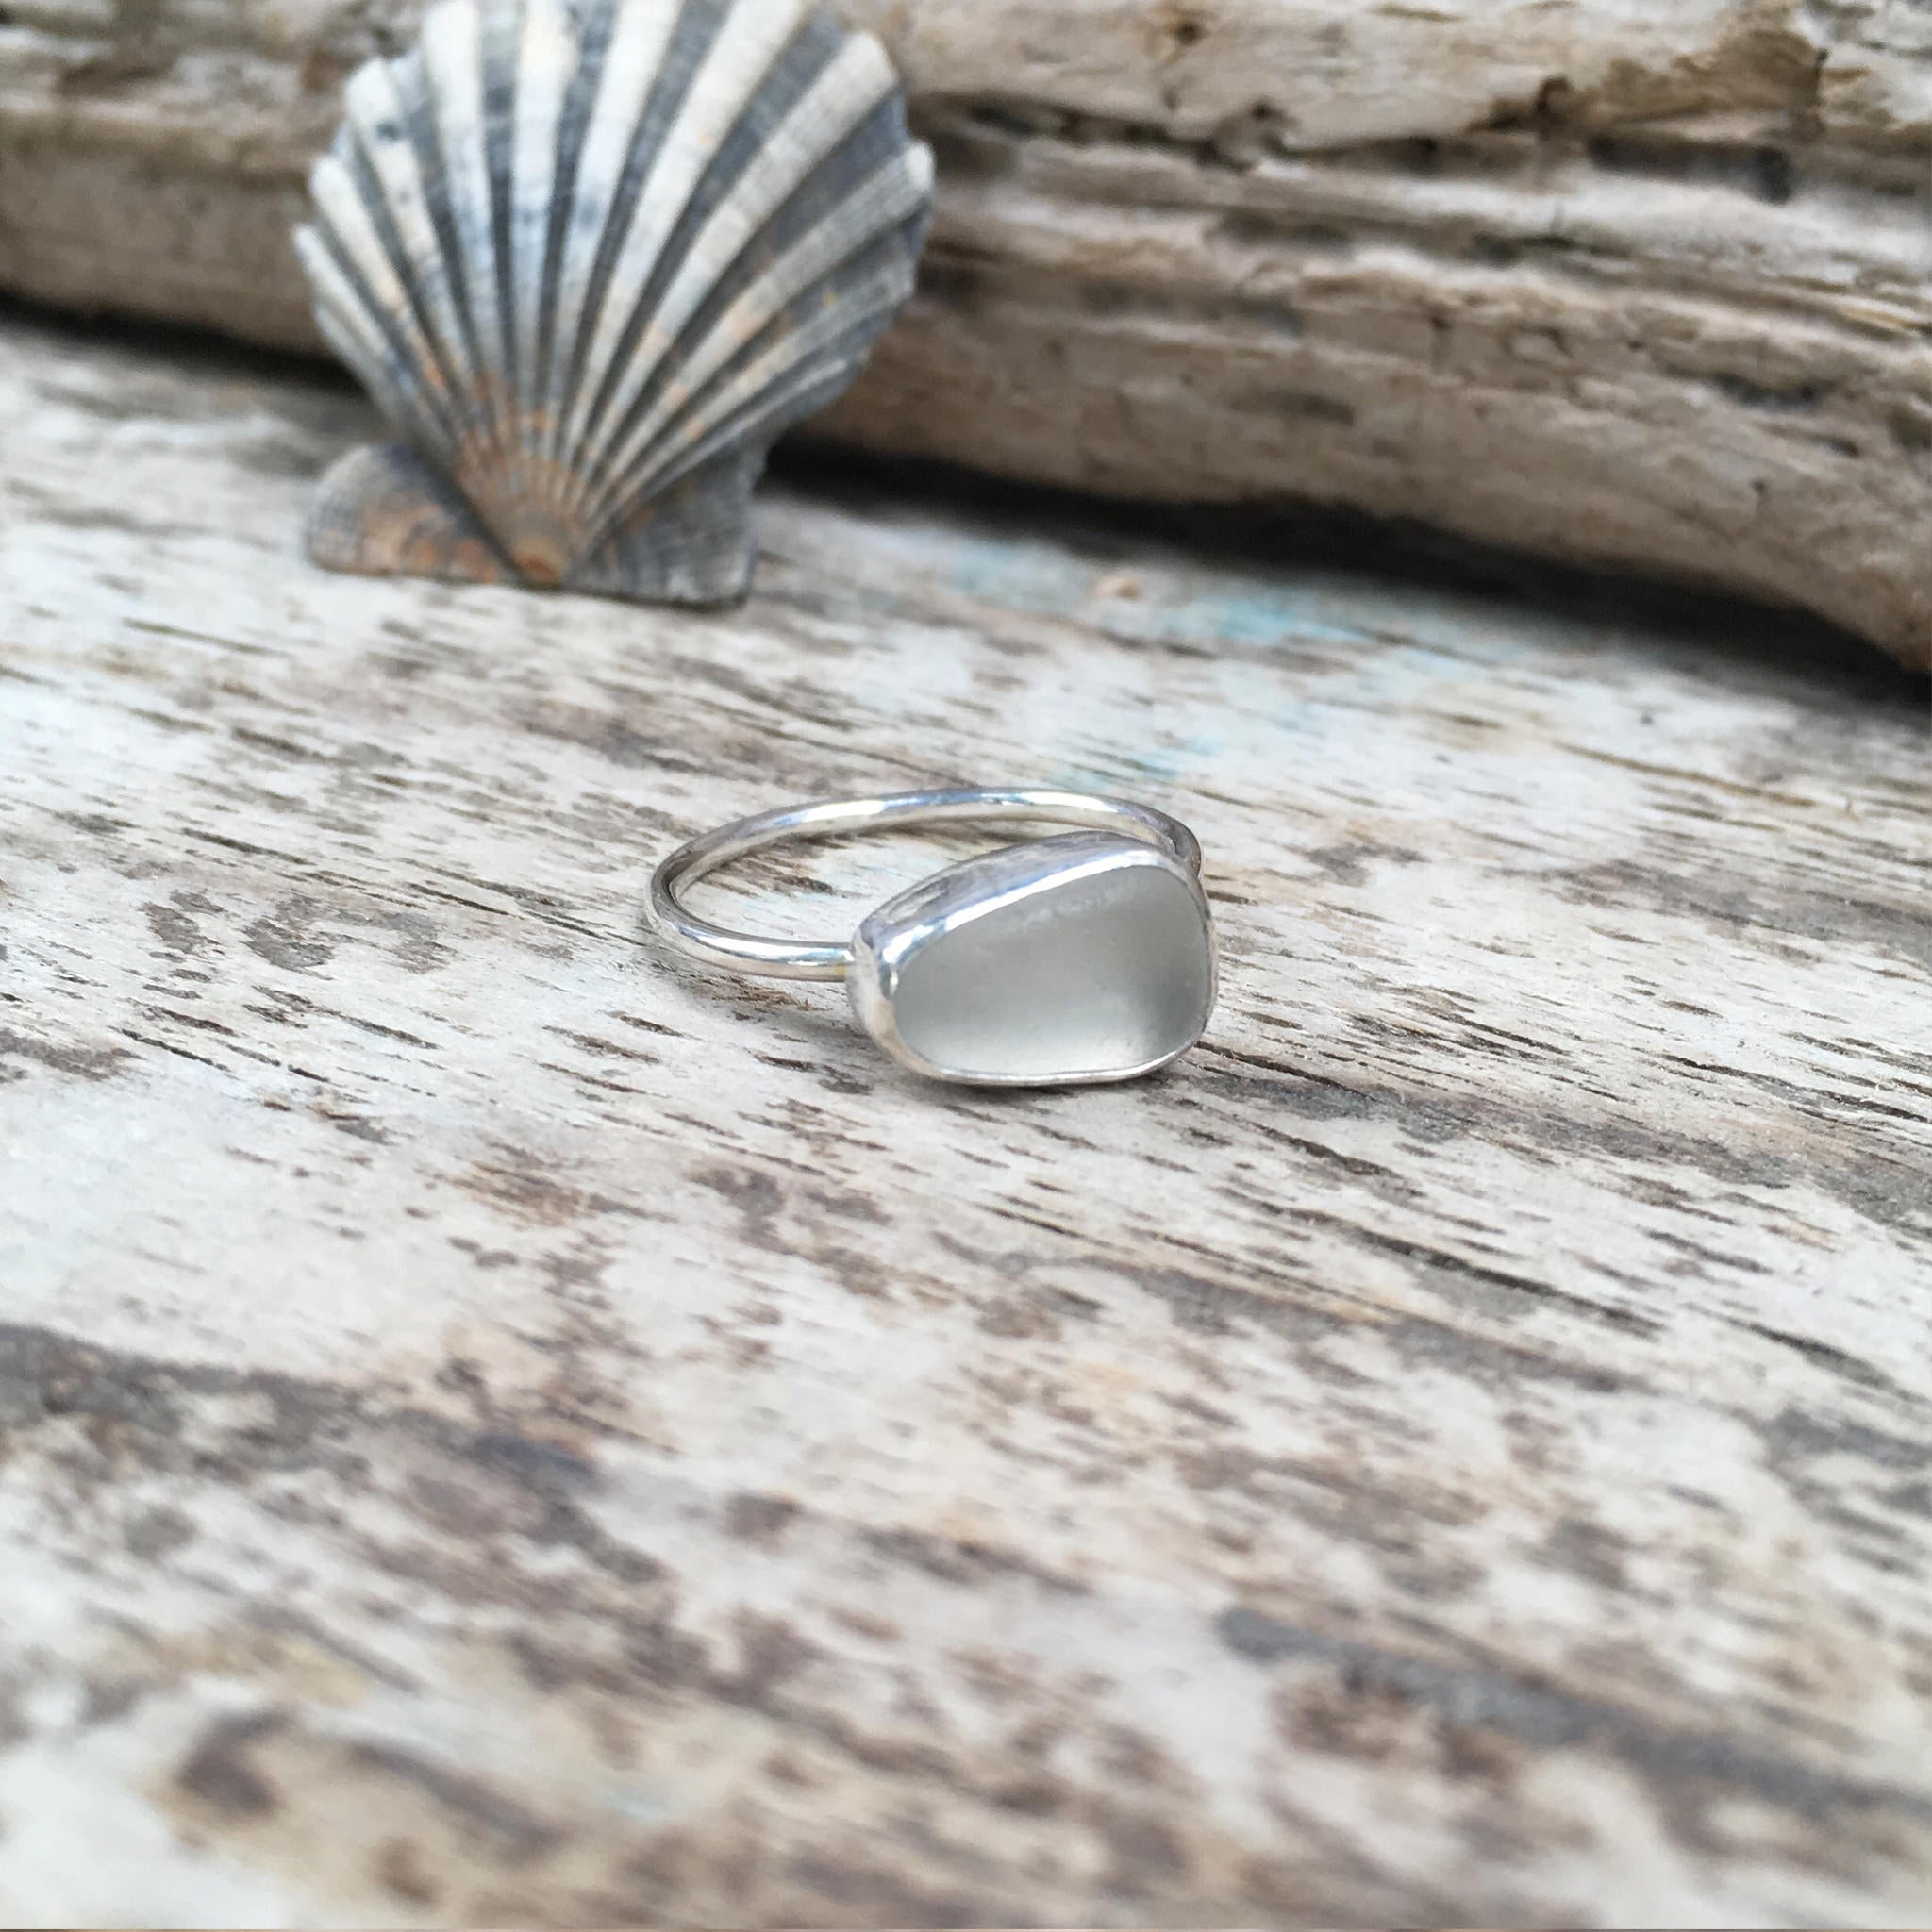 Genuine-Seaglass-Sterling-Silver-Stacking-Ring-by-SpecialjCreations